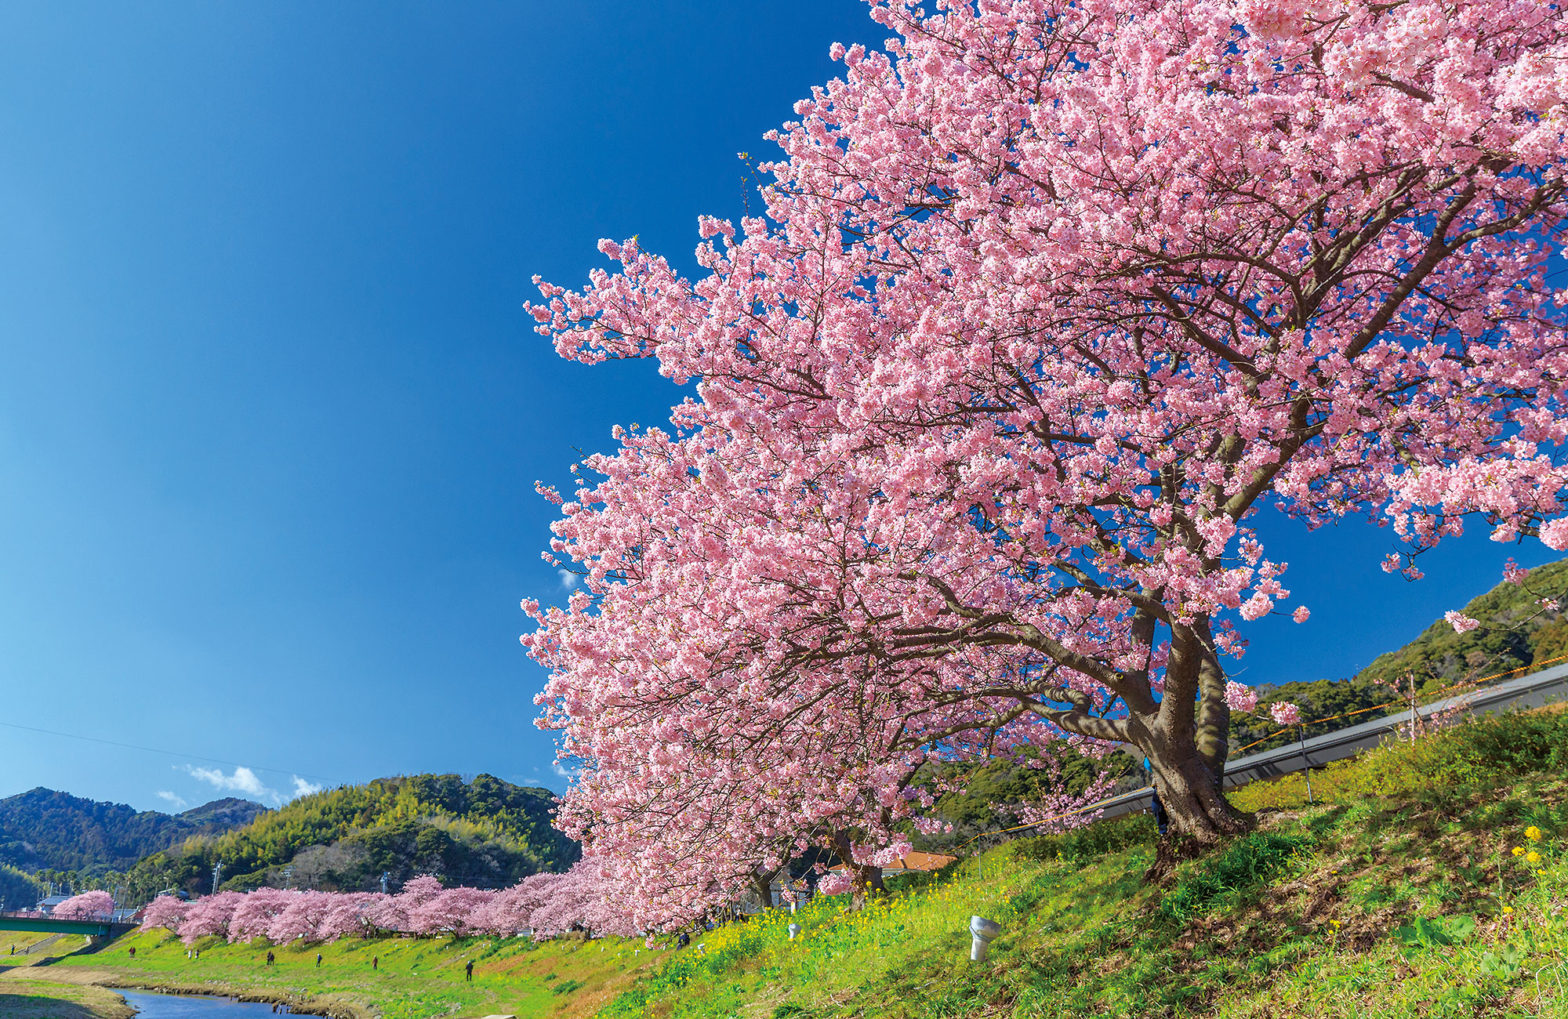 Southern Cherry Blossoms and Rape Blossoms